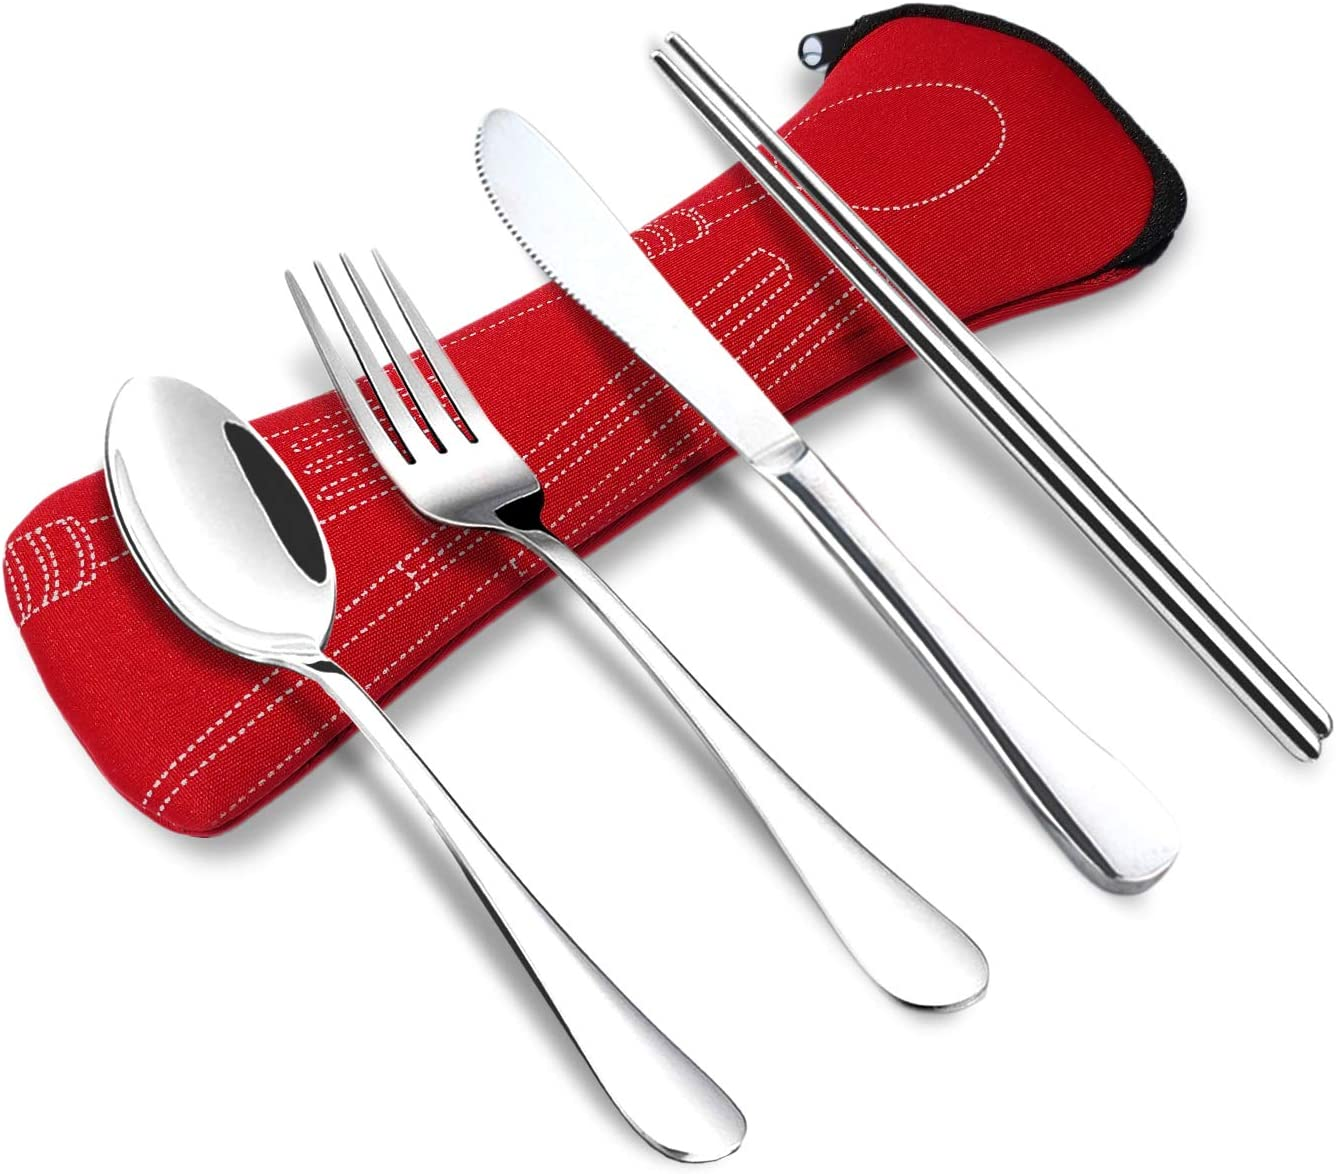 Reusable Portable Cutlery Kit Stainless Steel Flatware for Camping Lunch Travel School Office Home with Zipper Case NOMACY 4 Pieces Utensils Set